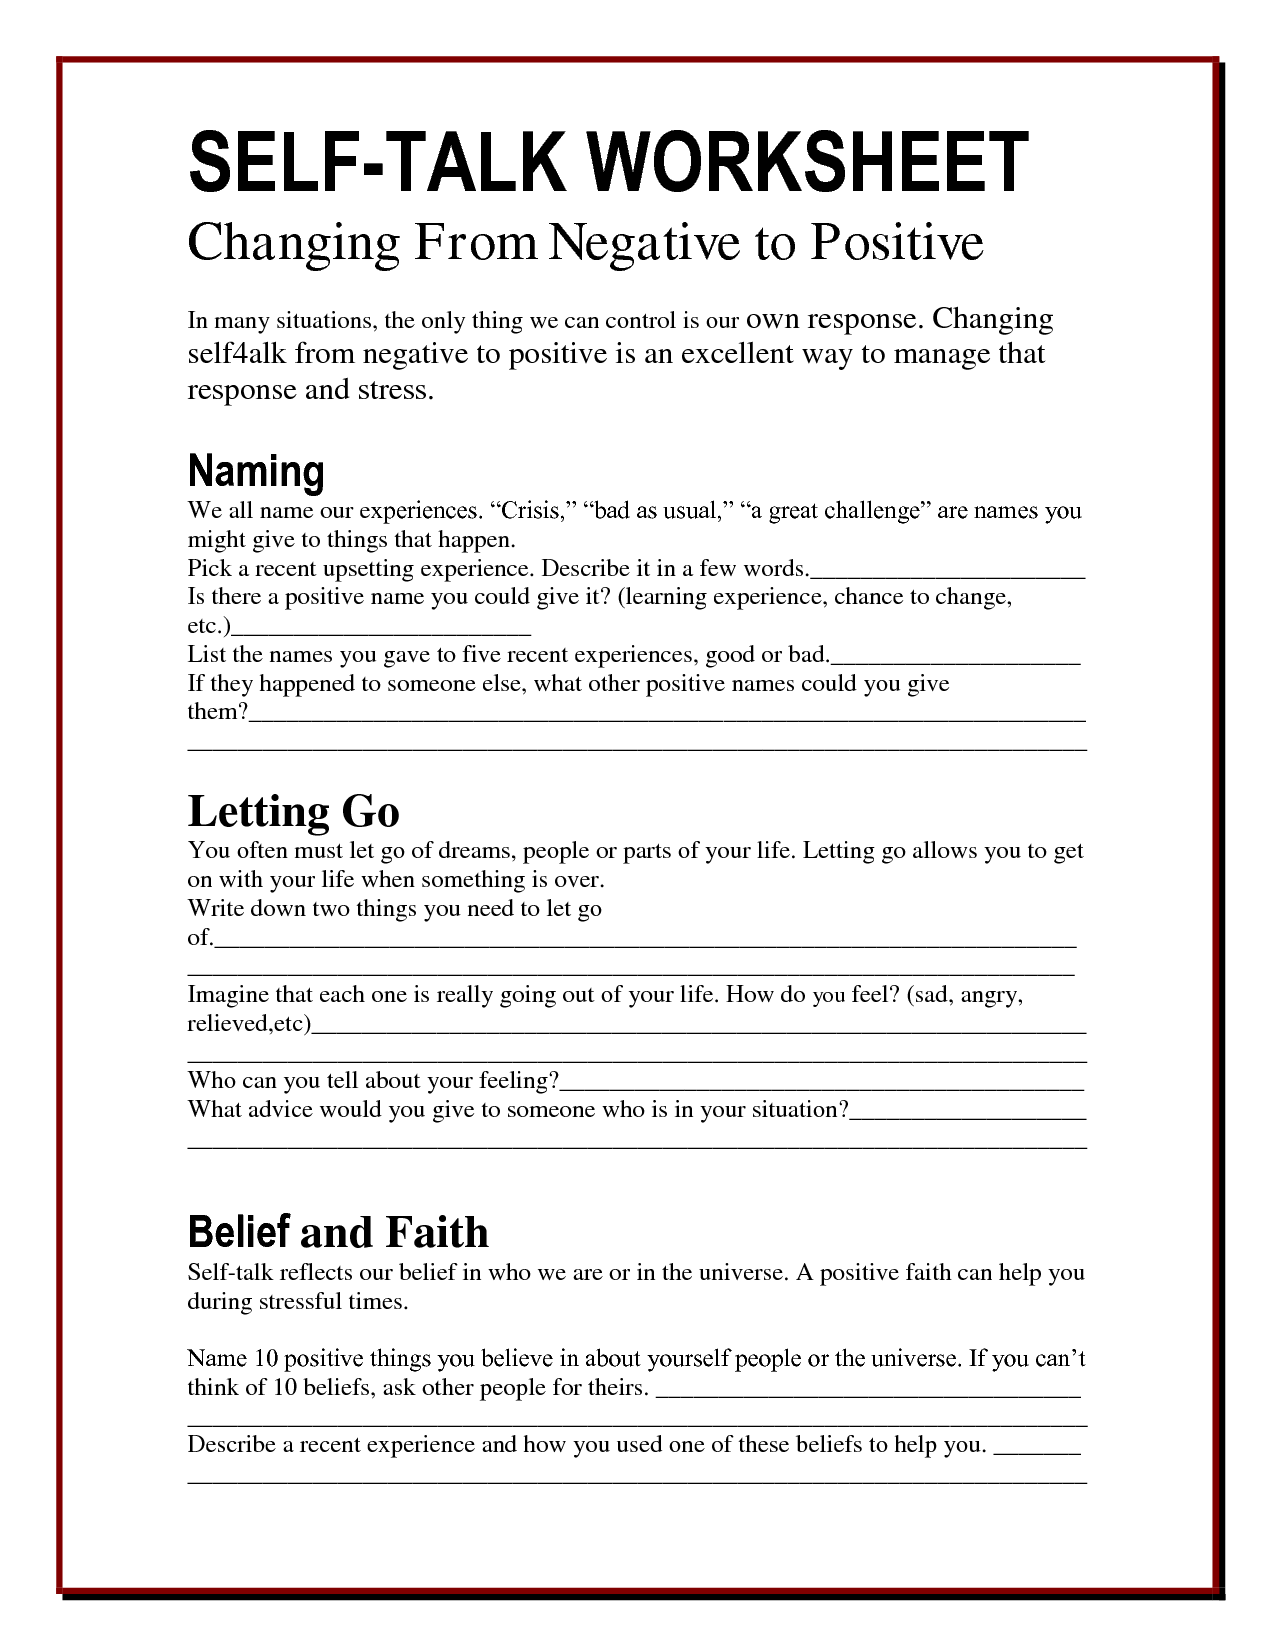 Uncategorized Co-occurring Disorders Worksheets for more tips to better manage the anxiety in your life visit findingstressrelief com